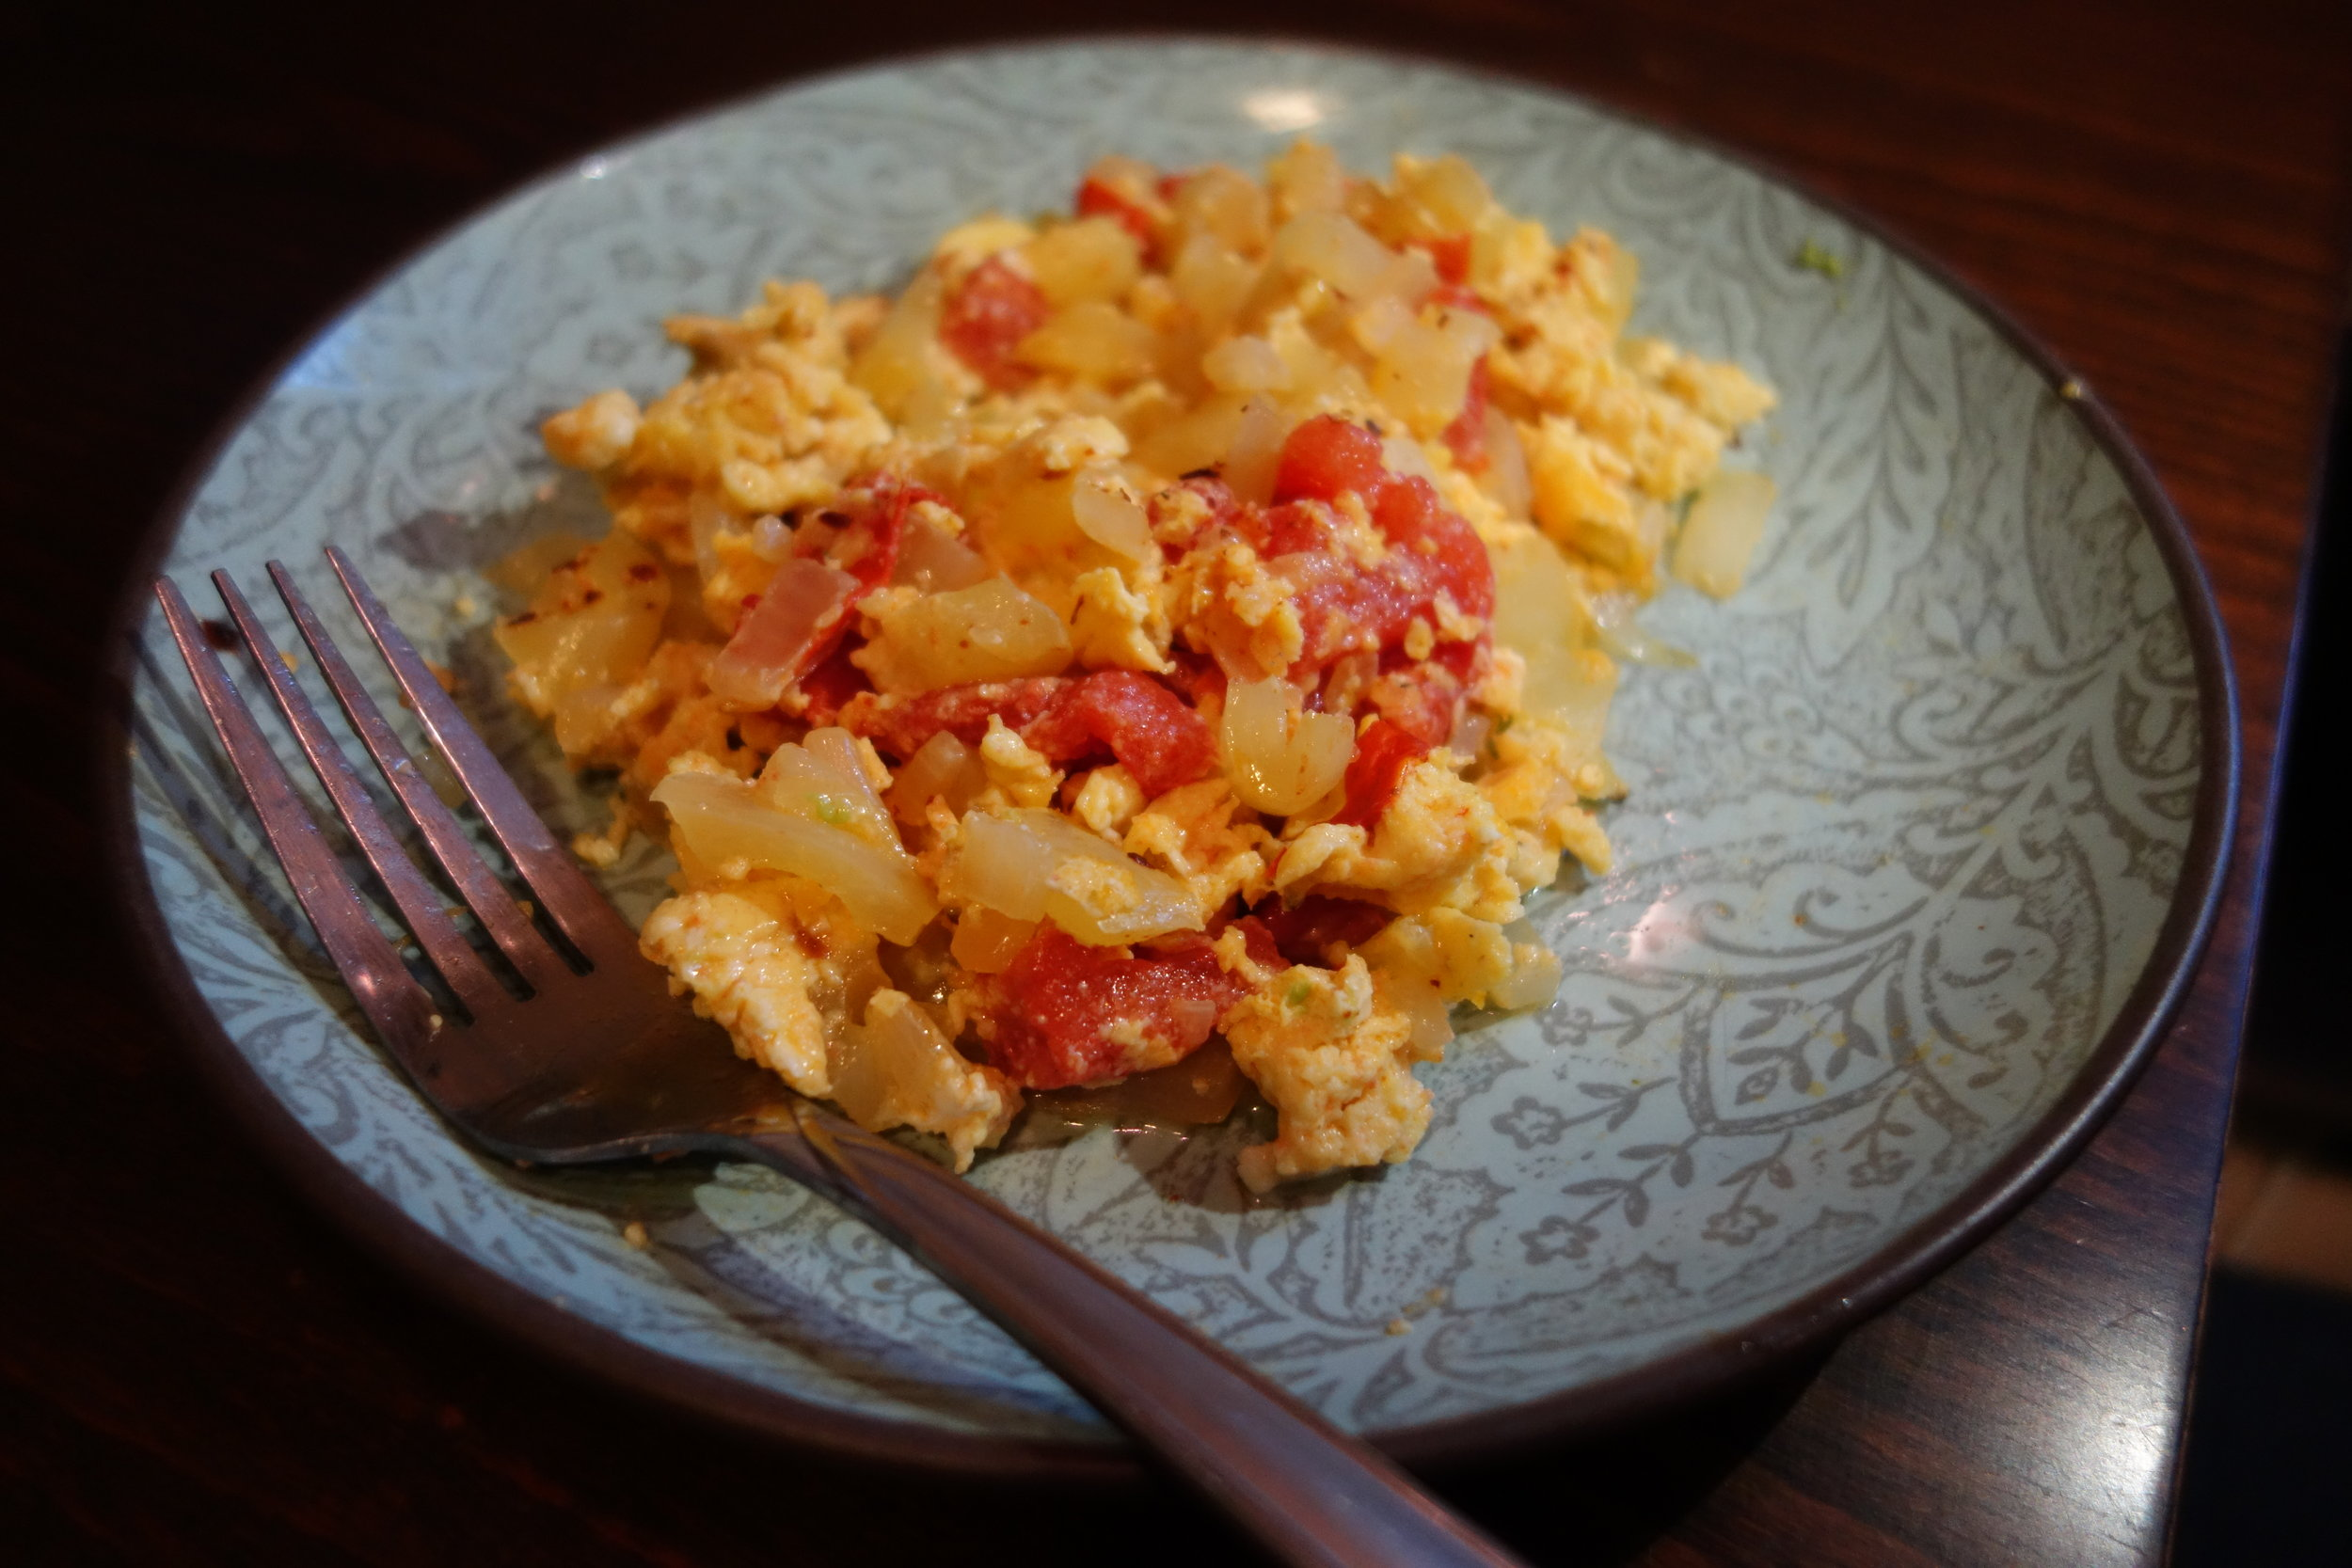 Our breakfast staple has been eggs. This is a Colombian dish called perico, eggs with peppers (or tomato) and onions.